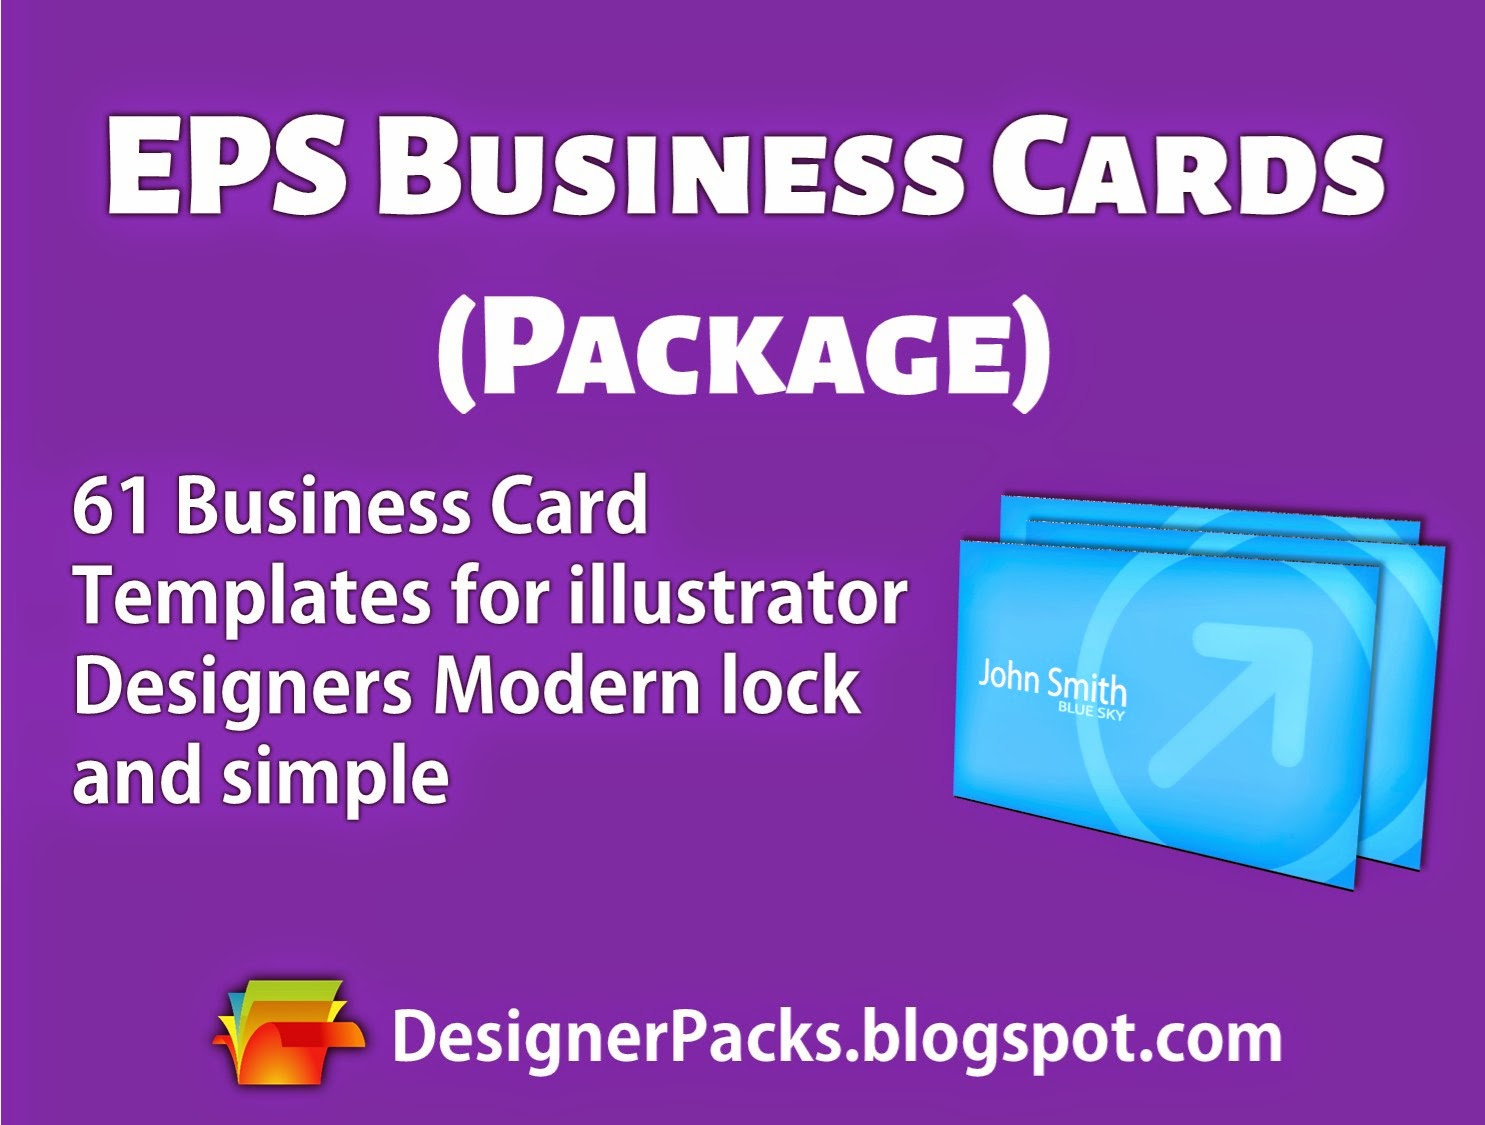 61 eps business card templates pack free download designer packs accmission Gallery